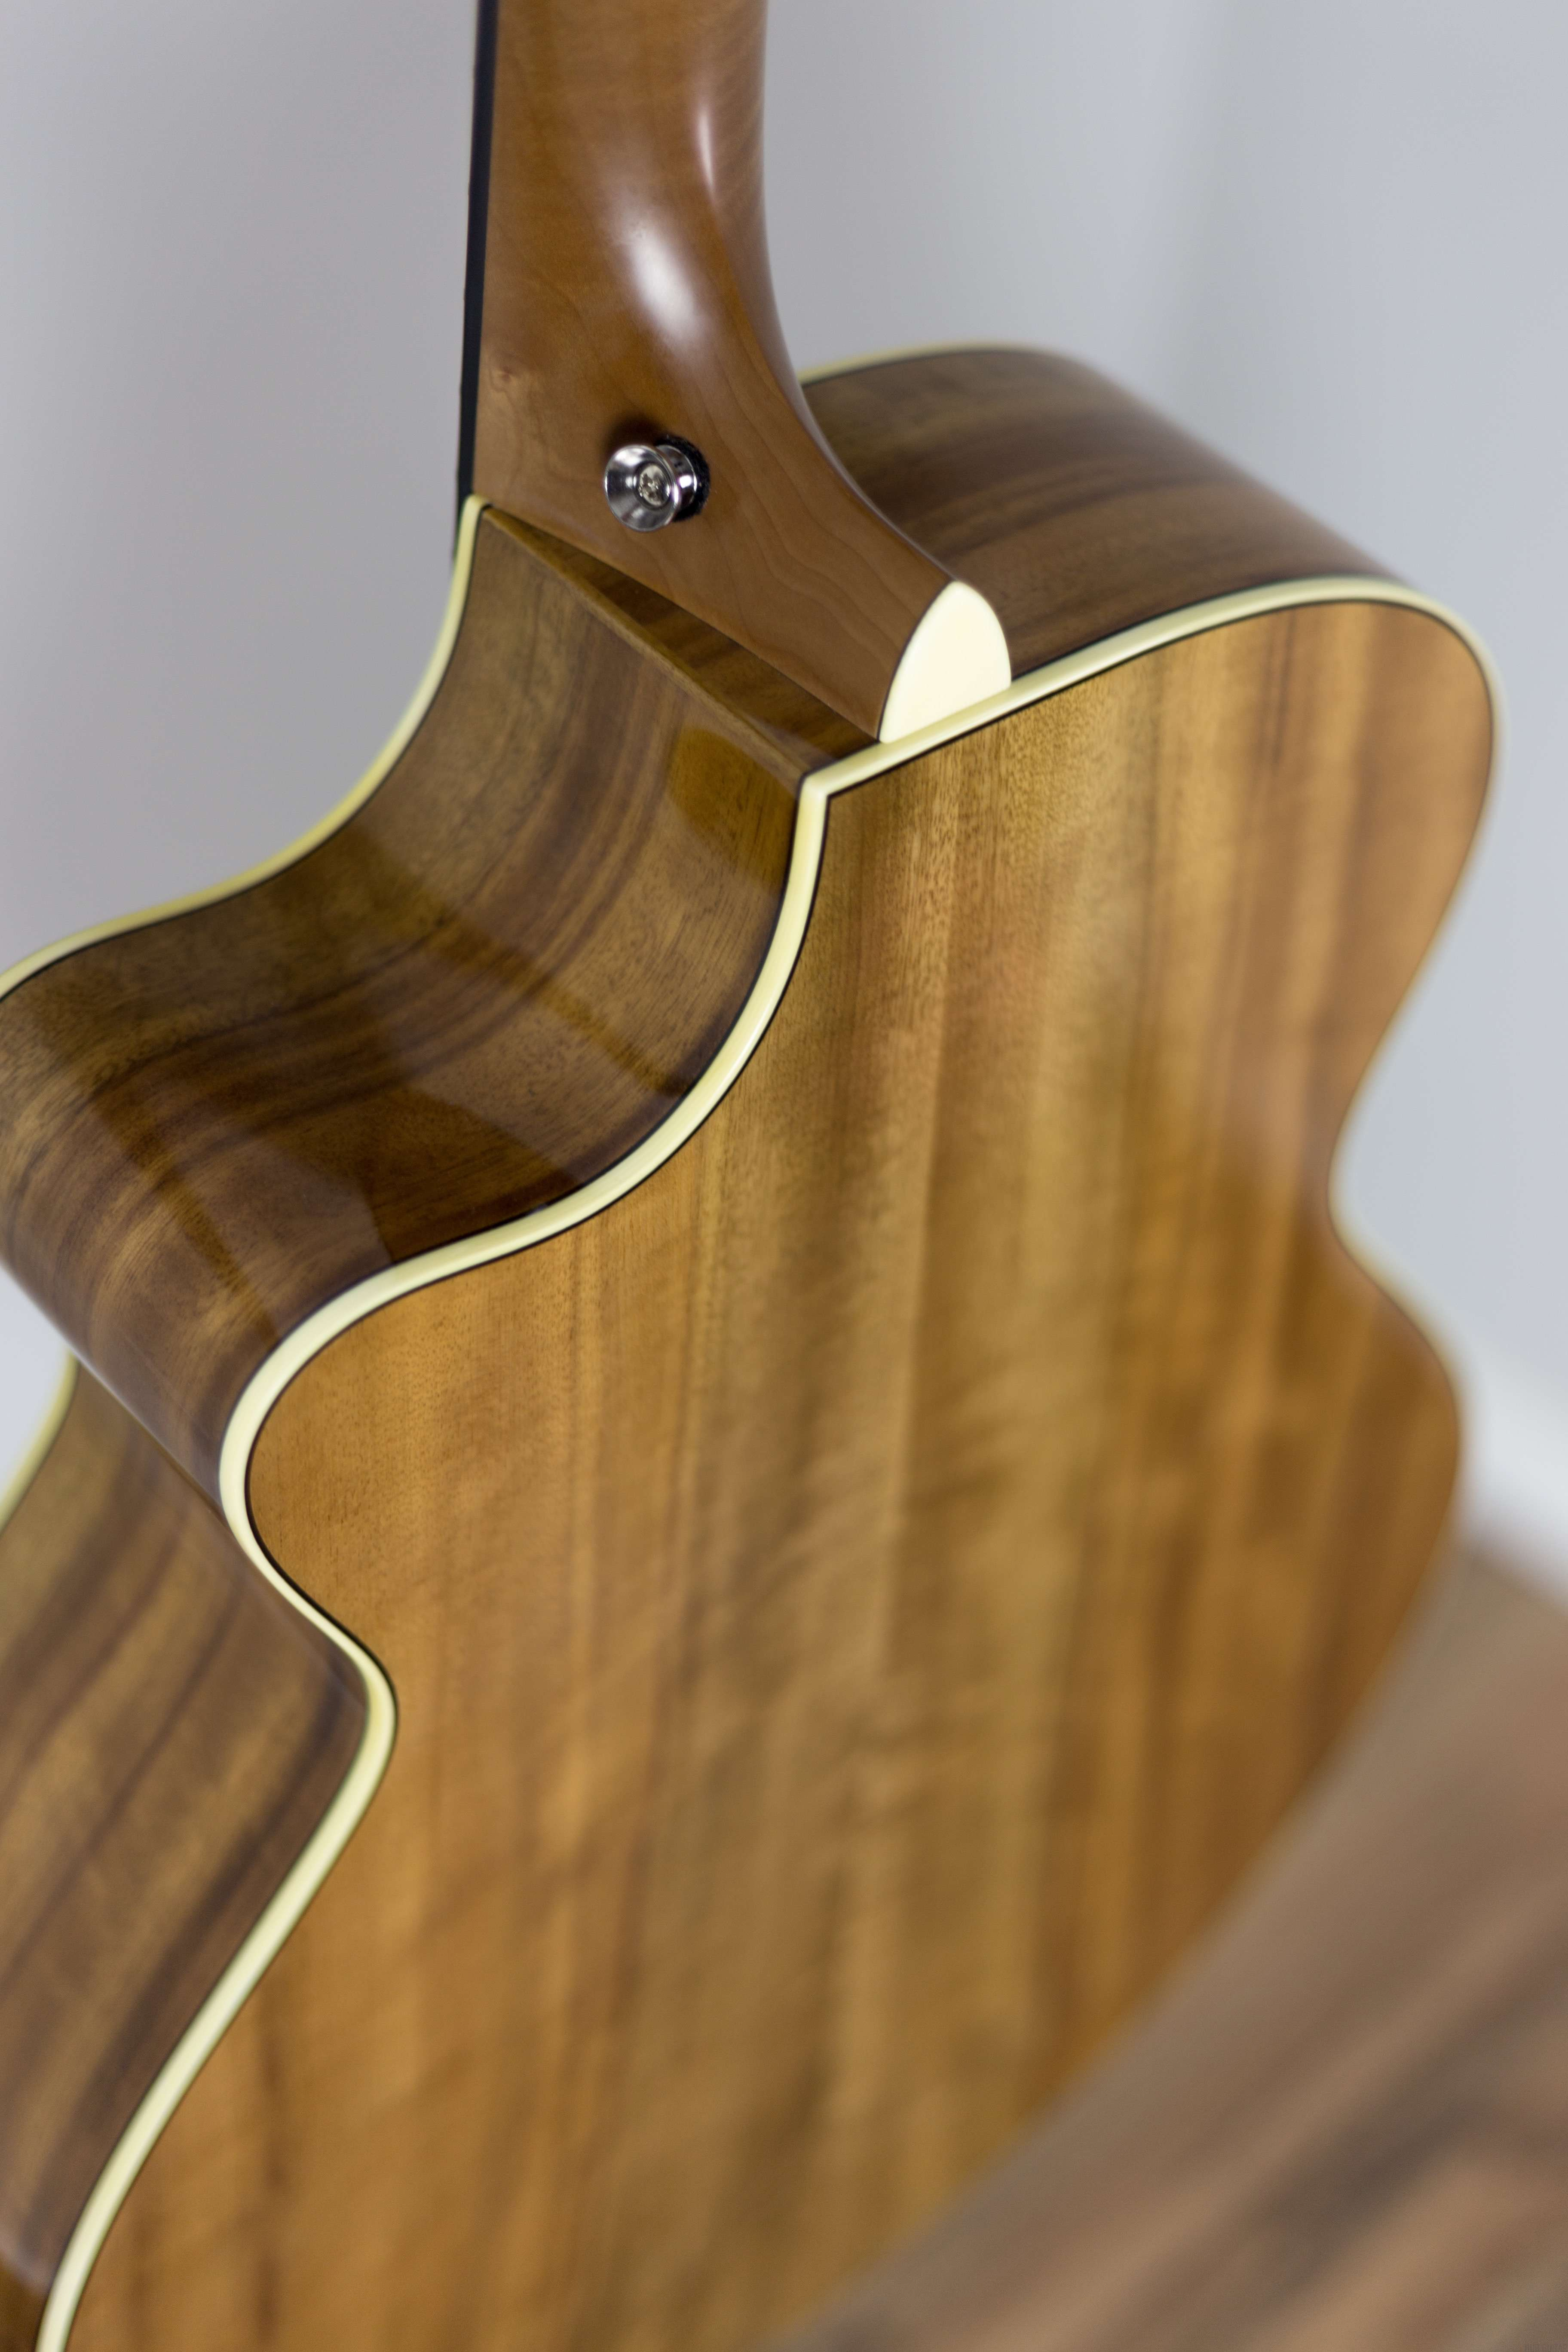 Outstanding Acoustic Guitar Anatomy Gallery - Human Anatomy Images ...